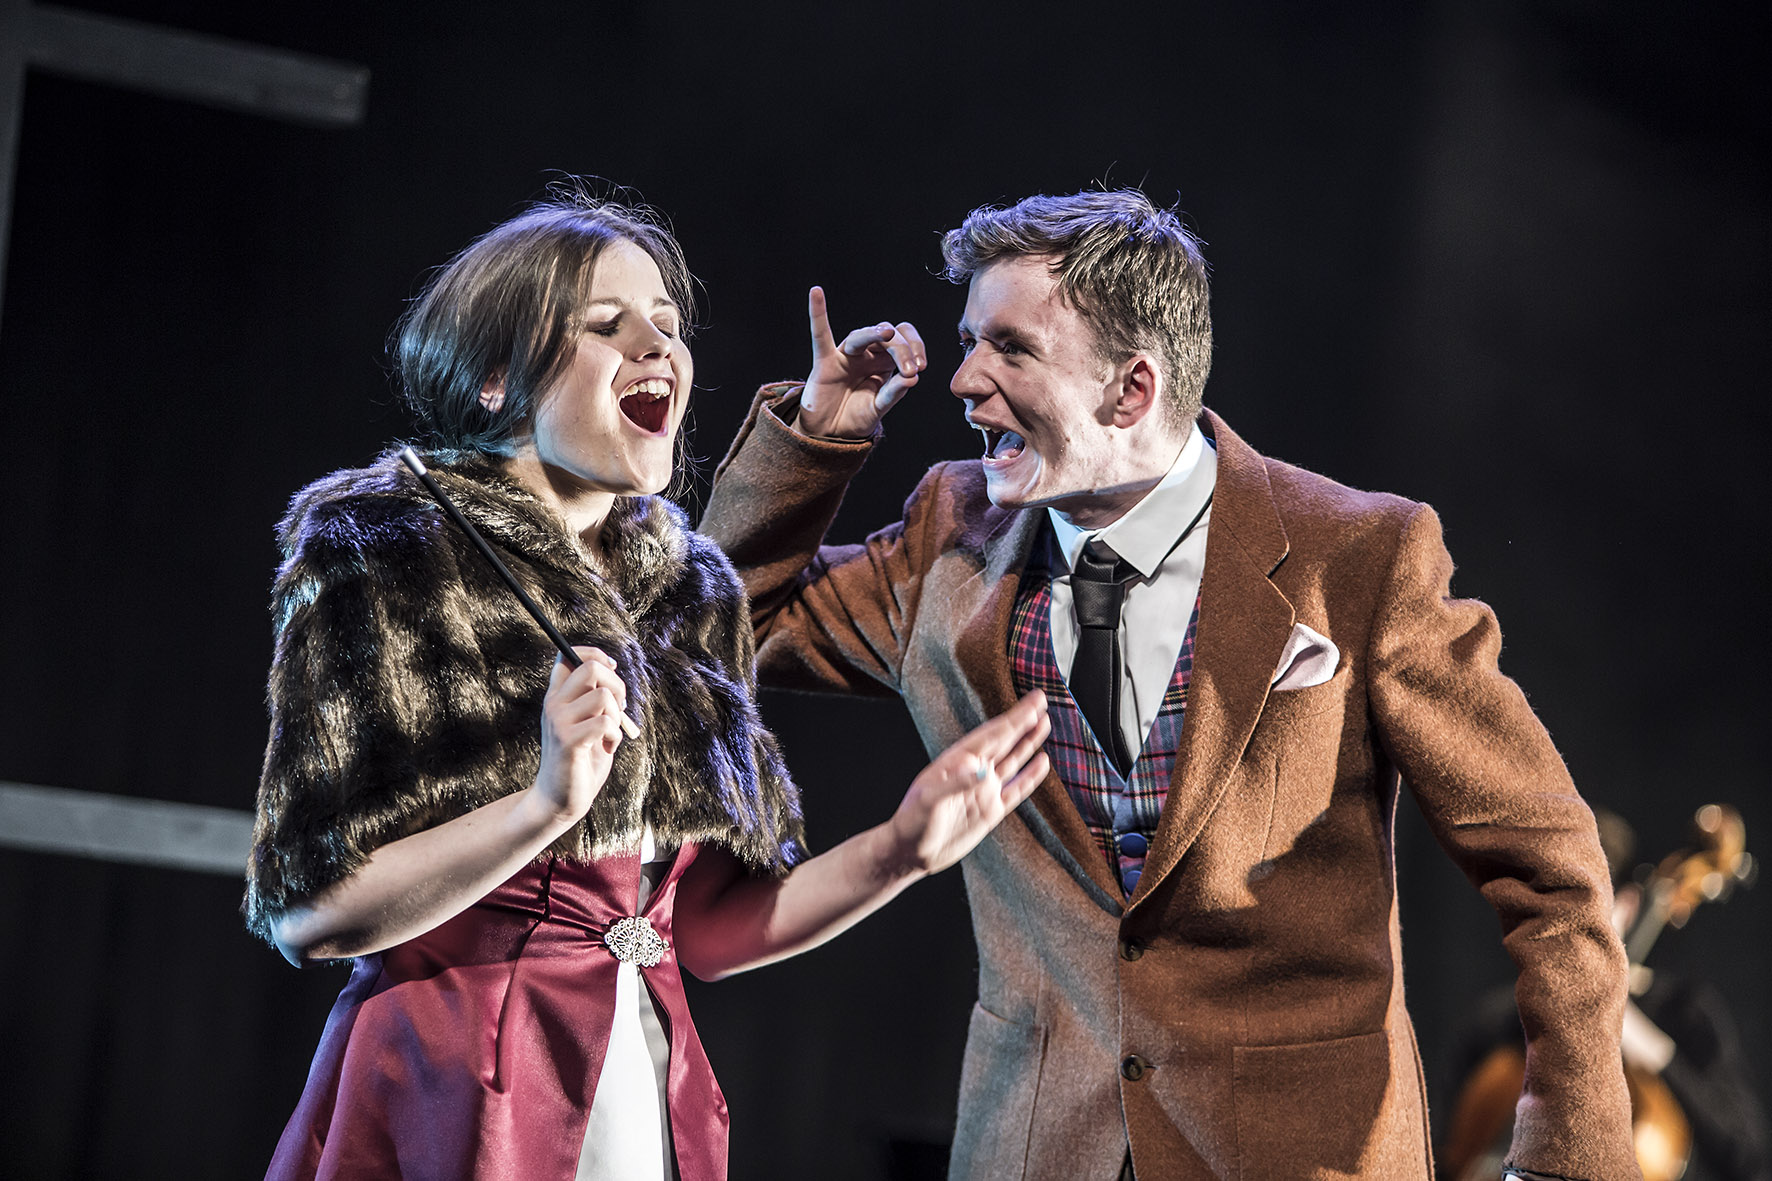 Shannen Wilkin and Adam Boyle in An Grianan Youth Theatre's The Wolves of Willoughby Chase. April 2018. Photo by Paul McGuckin. All rights reserved.